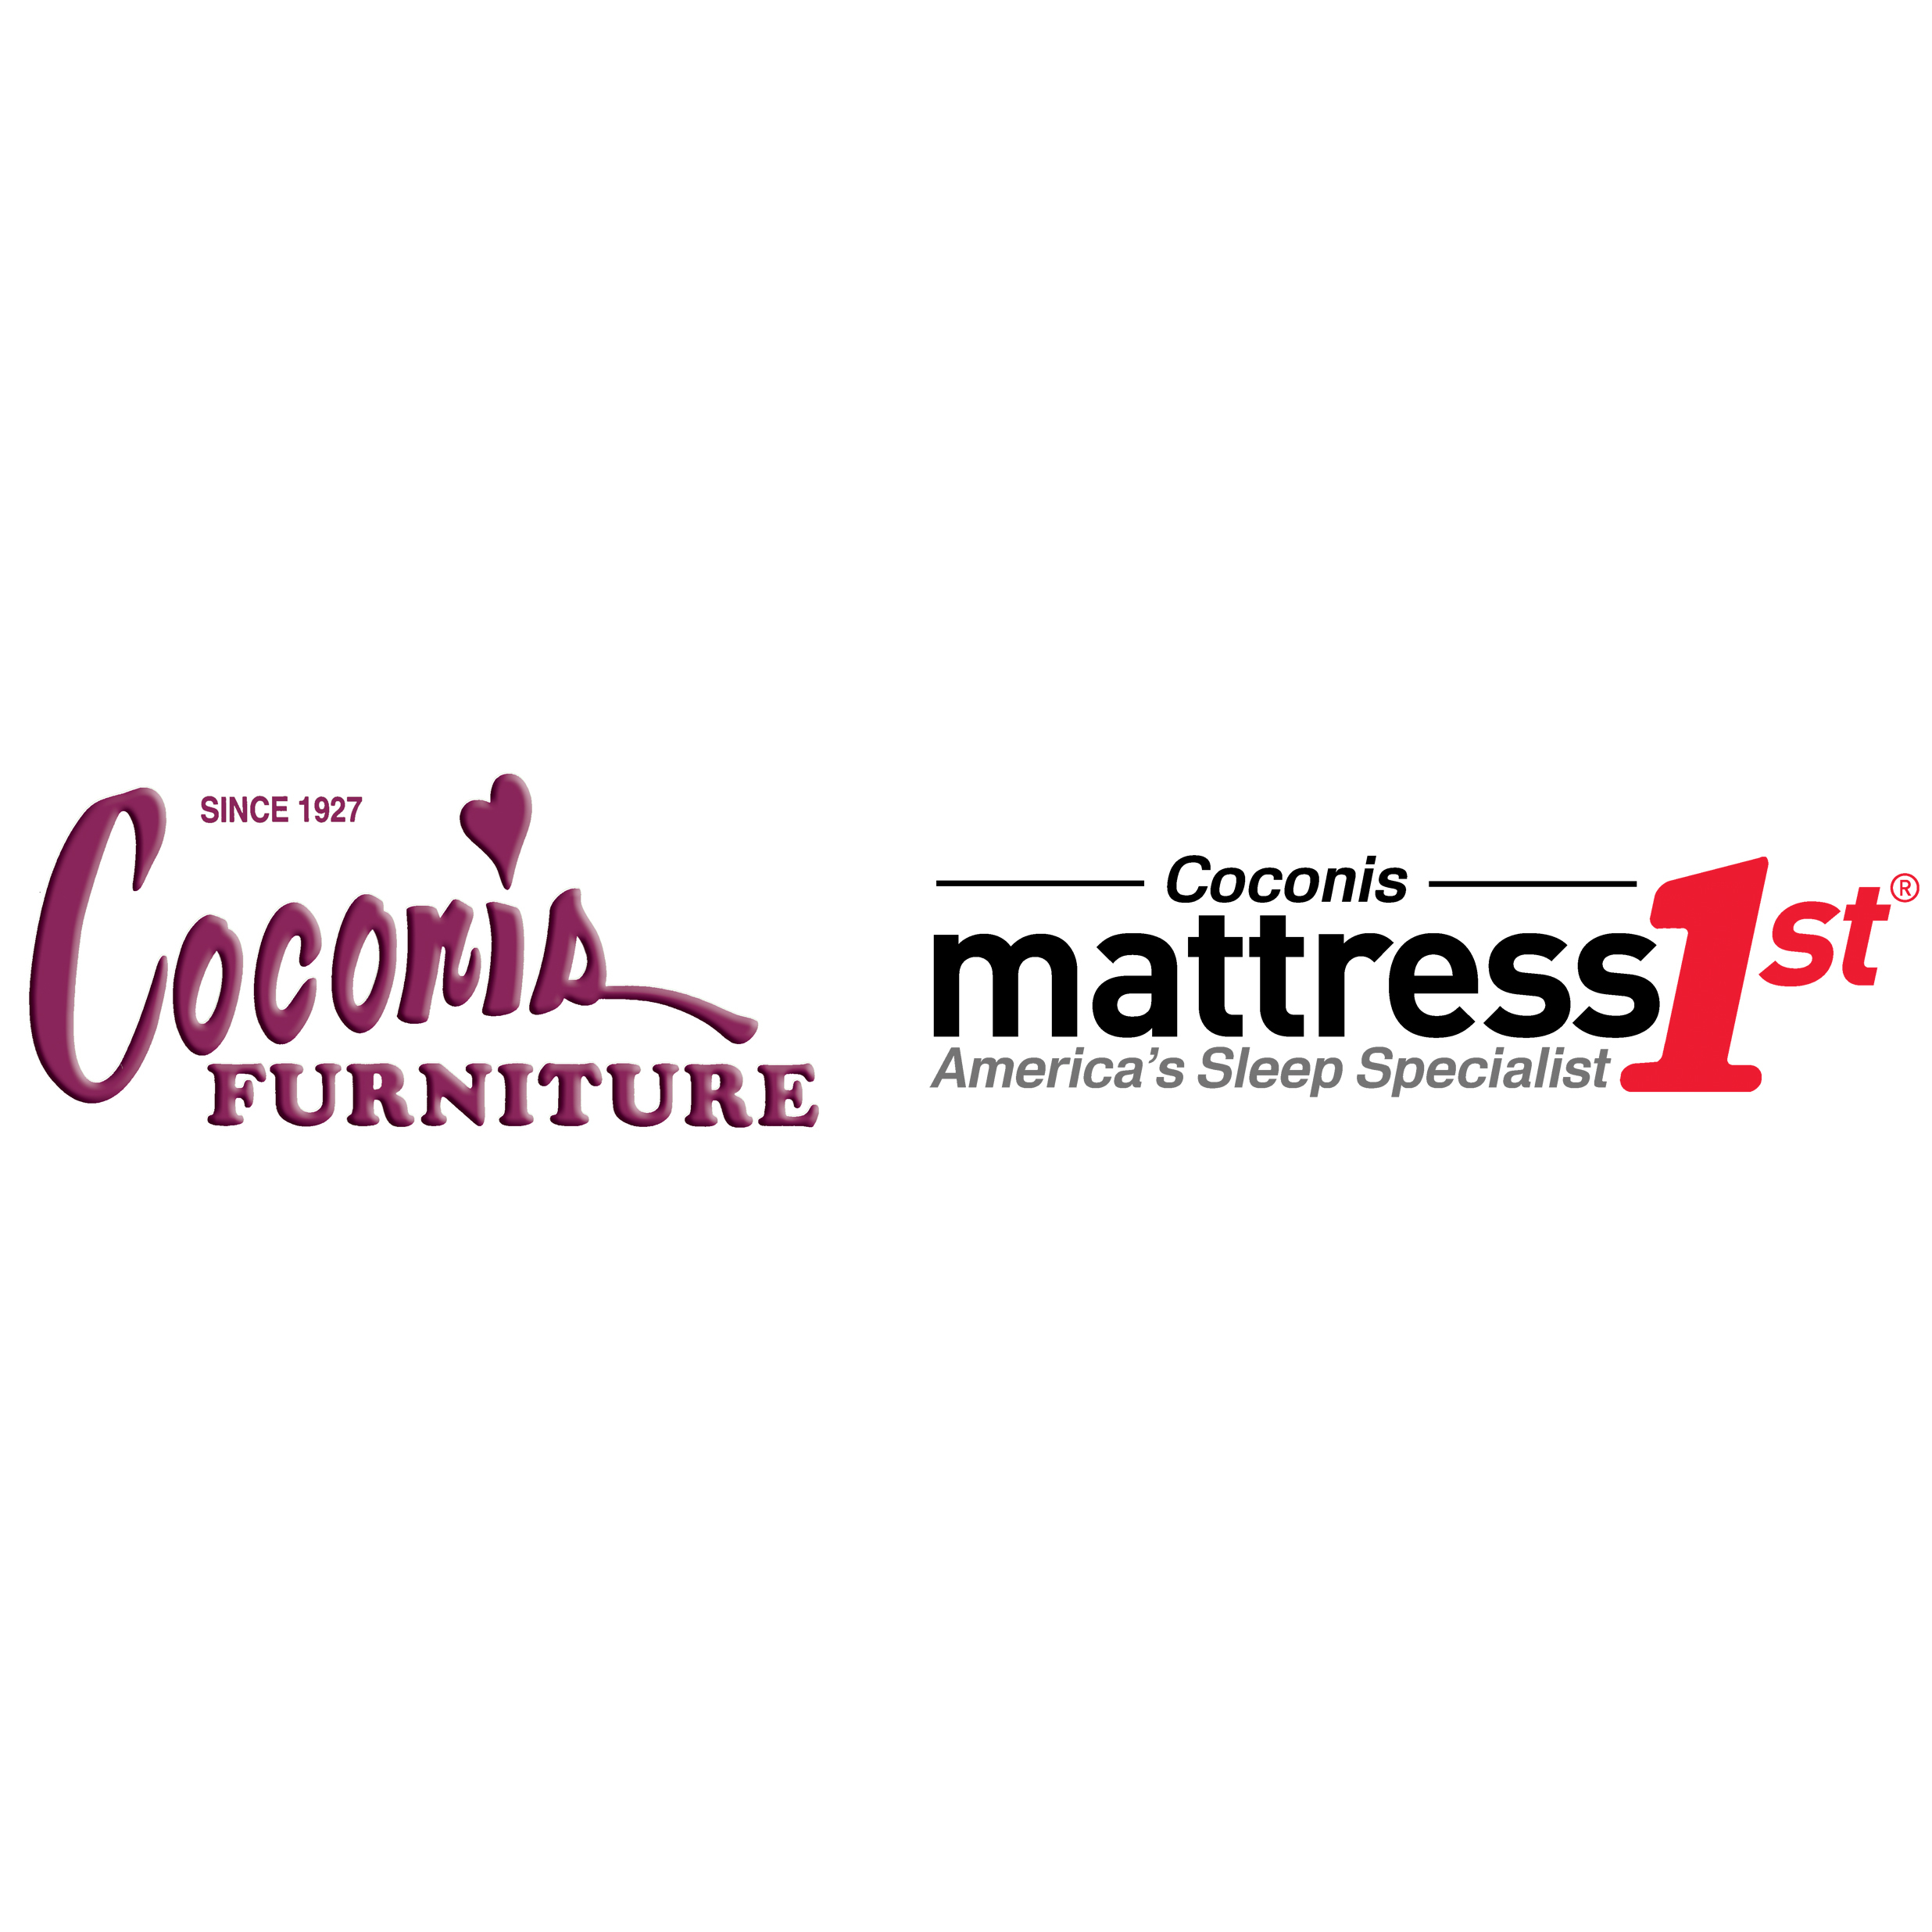 Coconis Furniture and Mattress 1st - Zanesville, OH - Furniture Stores